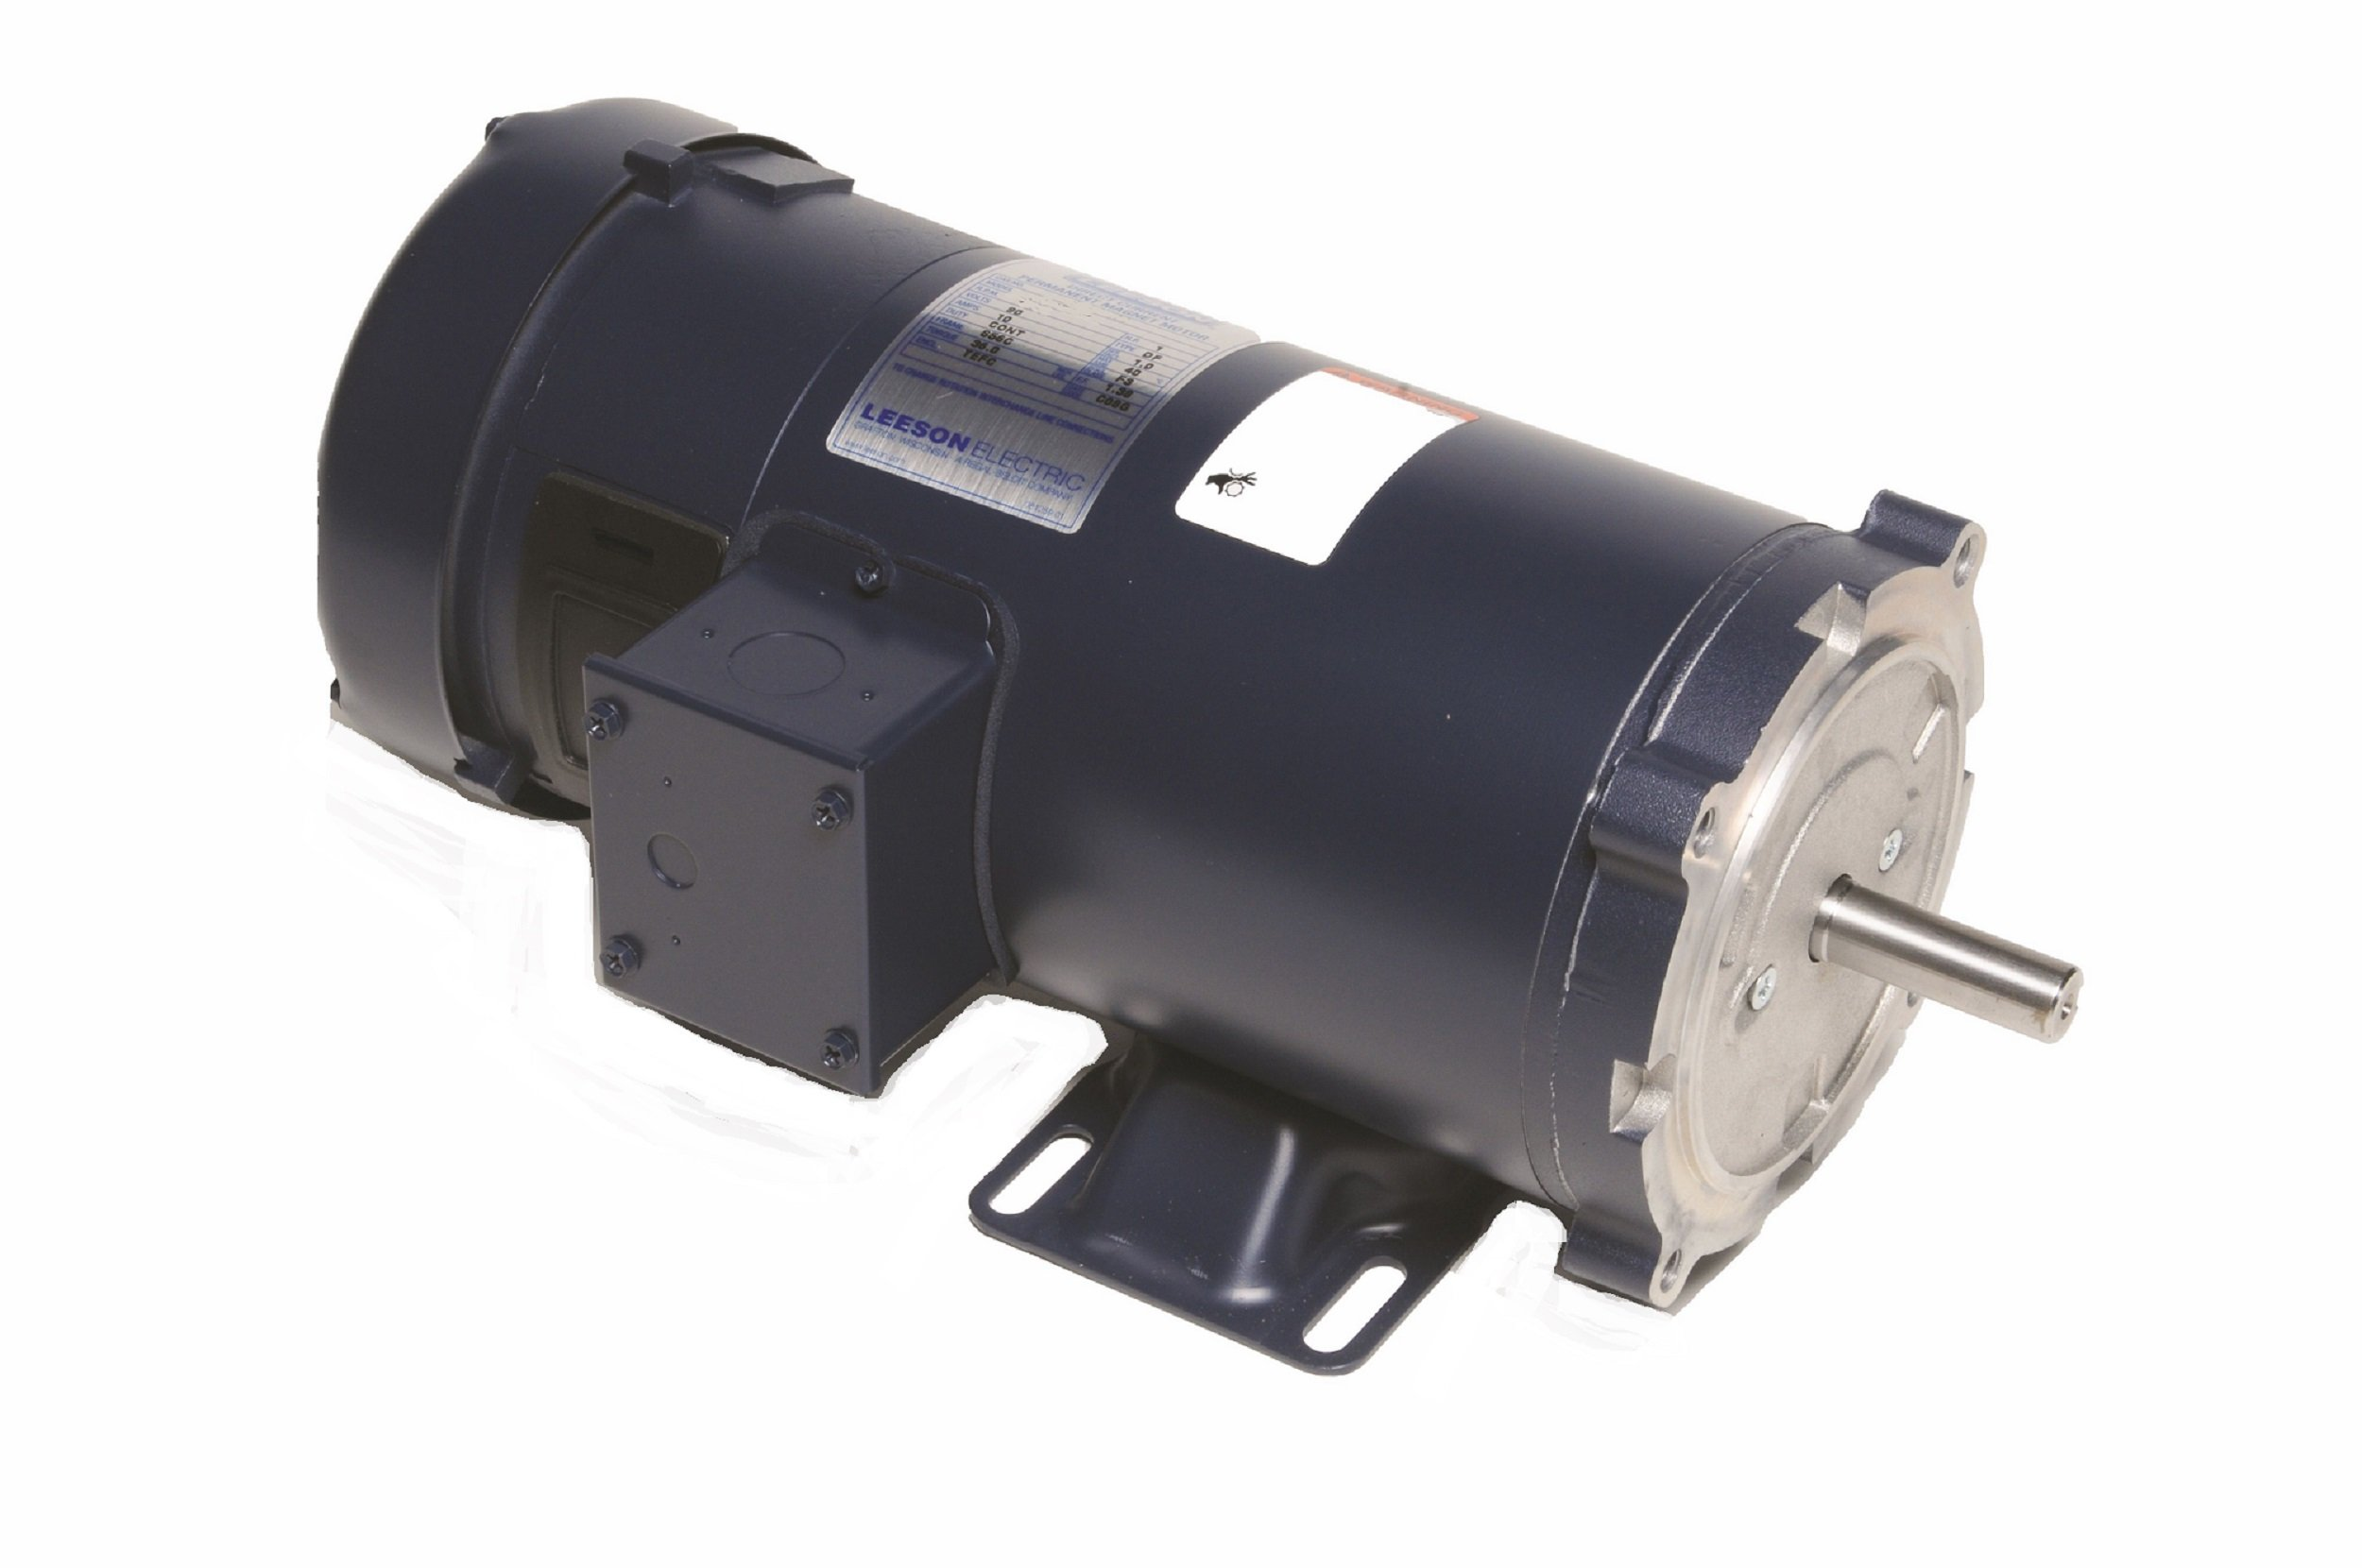 Leeson 108092.00 SCR Rated DC Motor, 56C Frame, C-Face Rigid Mounting, 1 1/2HP, 1750 RPM,  180V Voltage